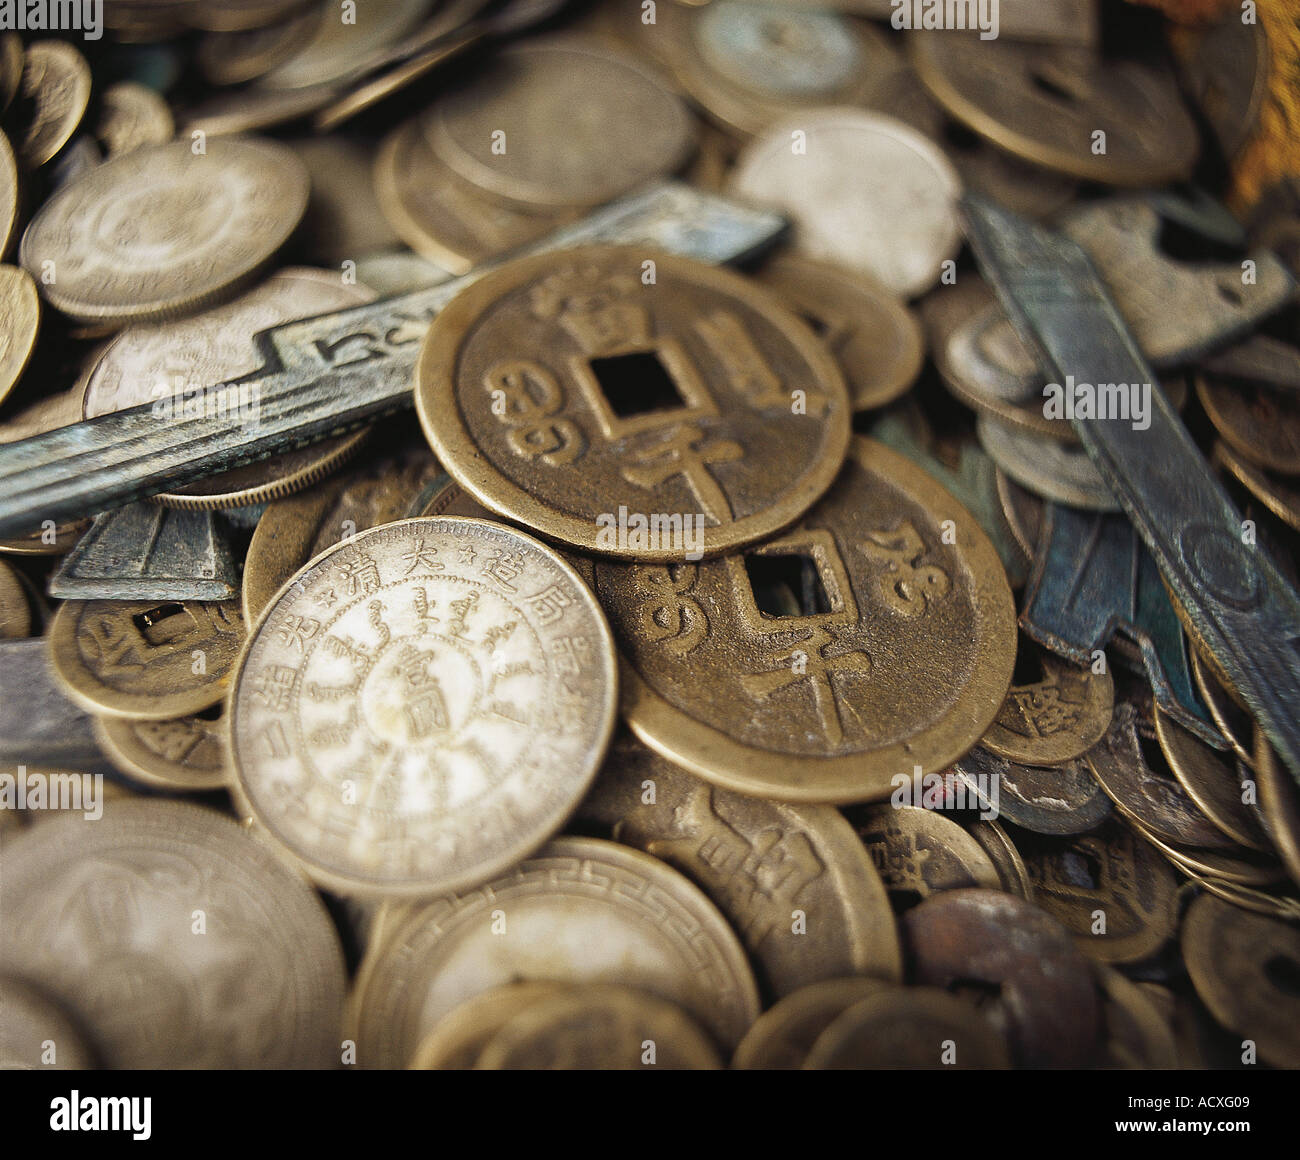 Gold and bronze old fashioned Chinese coins - Stock Image